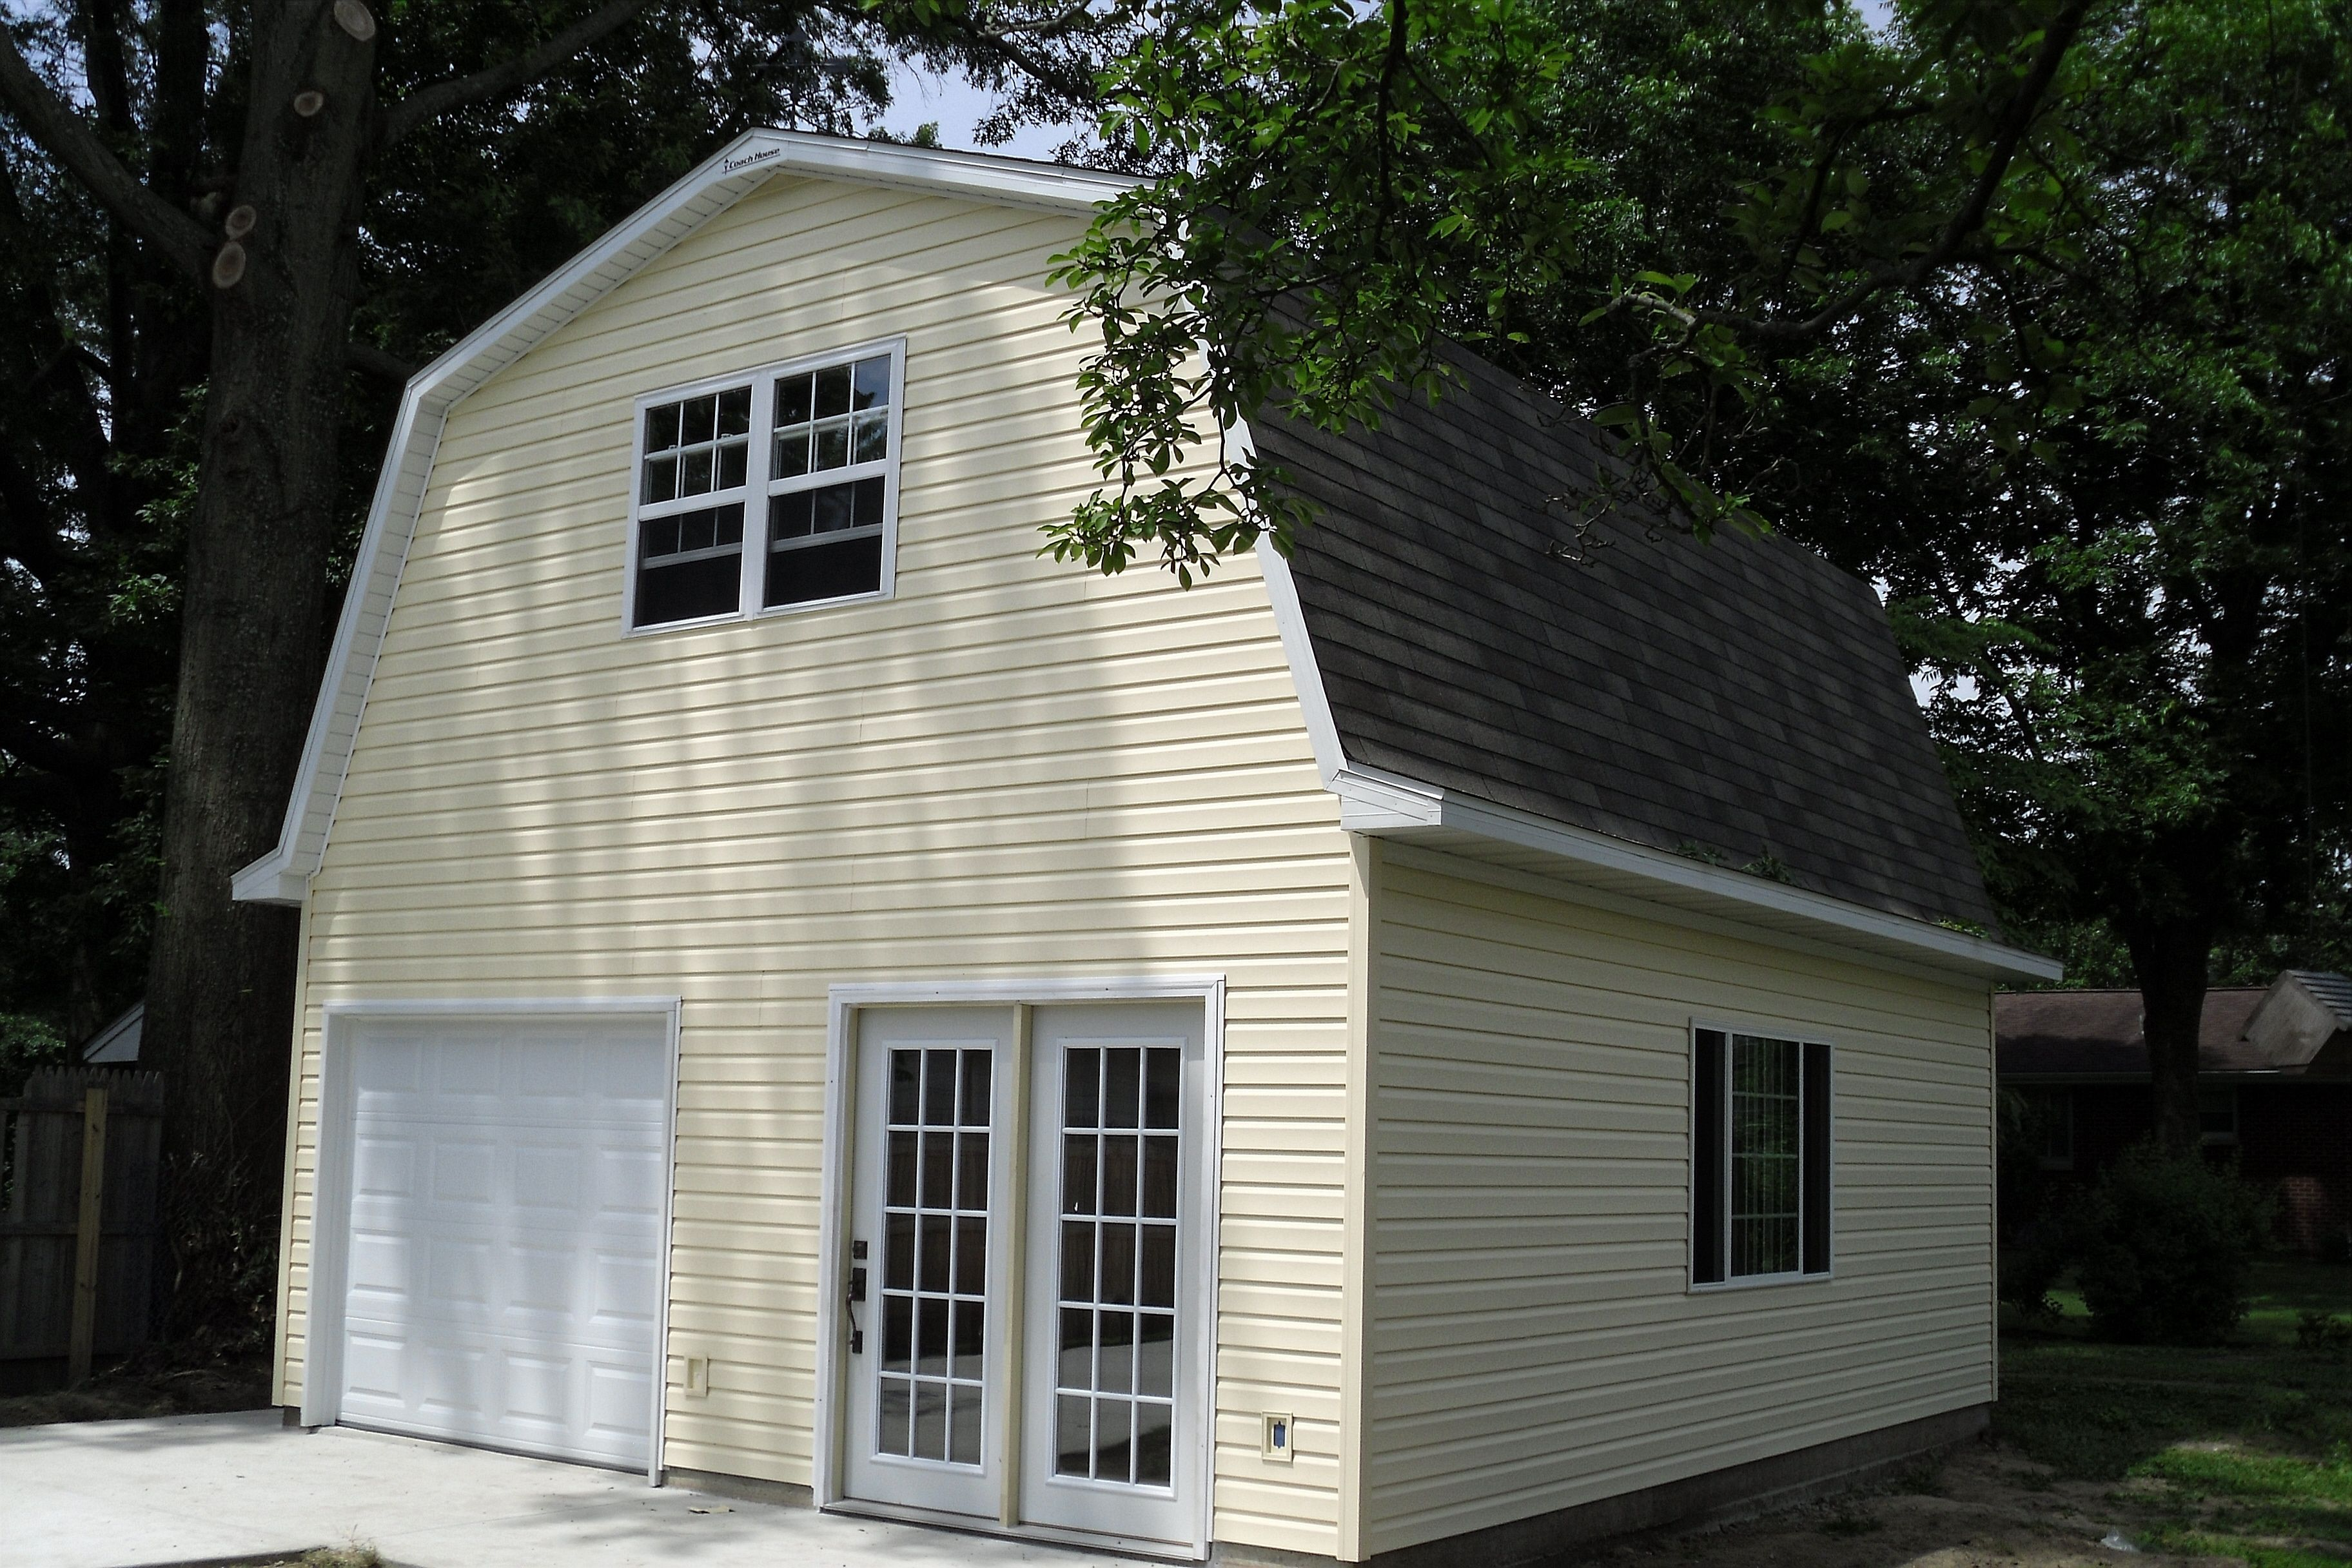 Barn Style Garages With Living Space Above    Roof House